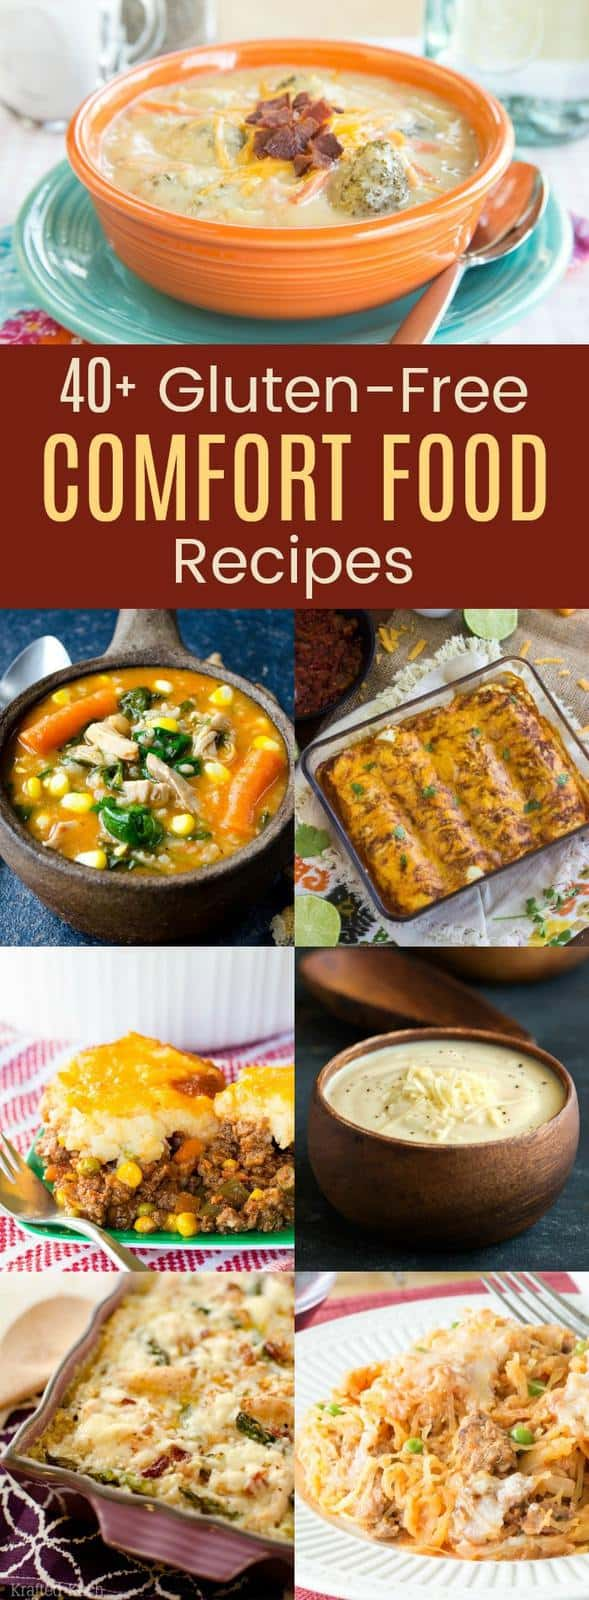 Over 40 Gluten Free Comfort Food Recipes - casseroles, skillets, soups, stews, slow cooker meals and more comfort foods for dinner this fall, winter, or all year long!